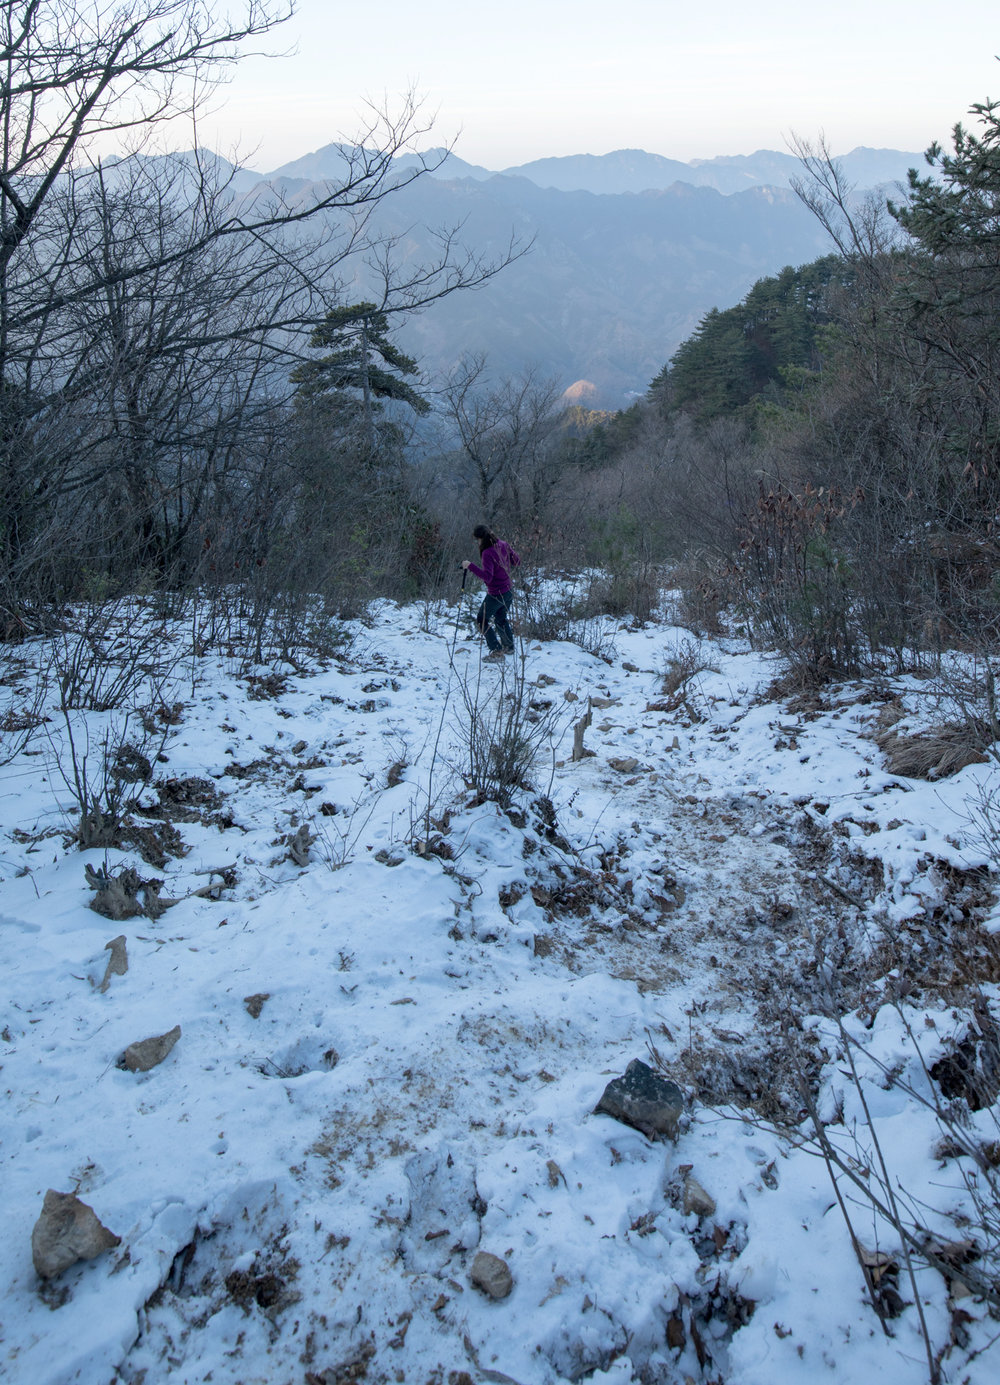 Trail with snow in Qingliang Feng, China